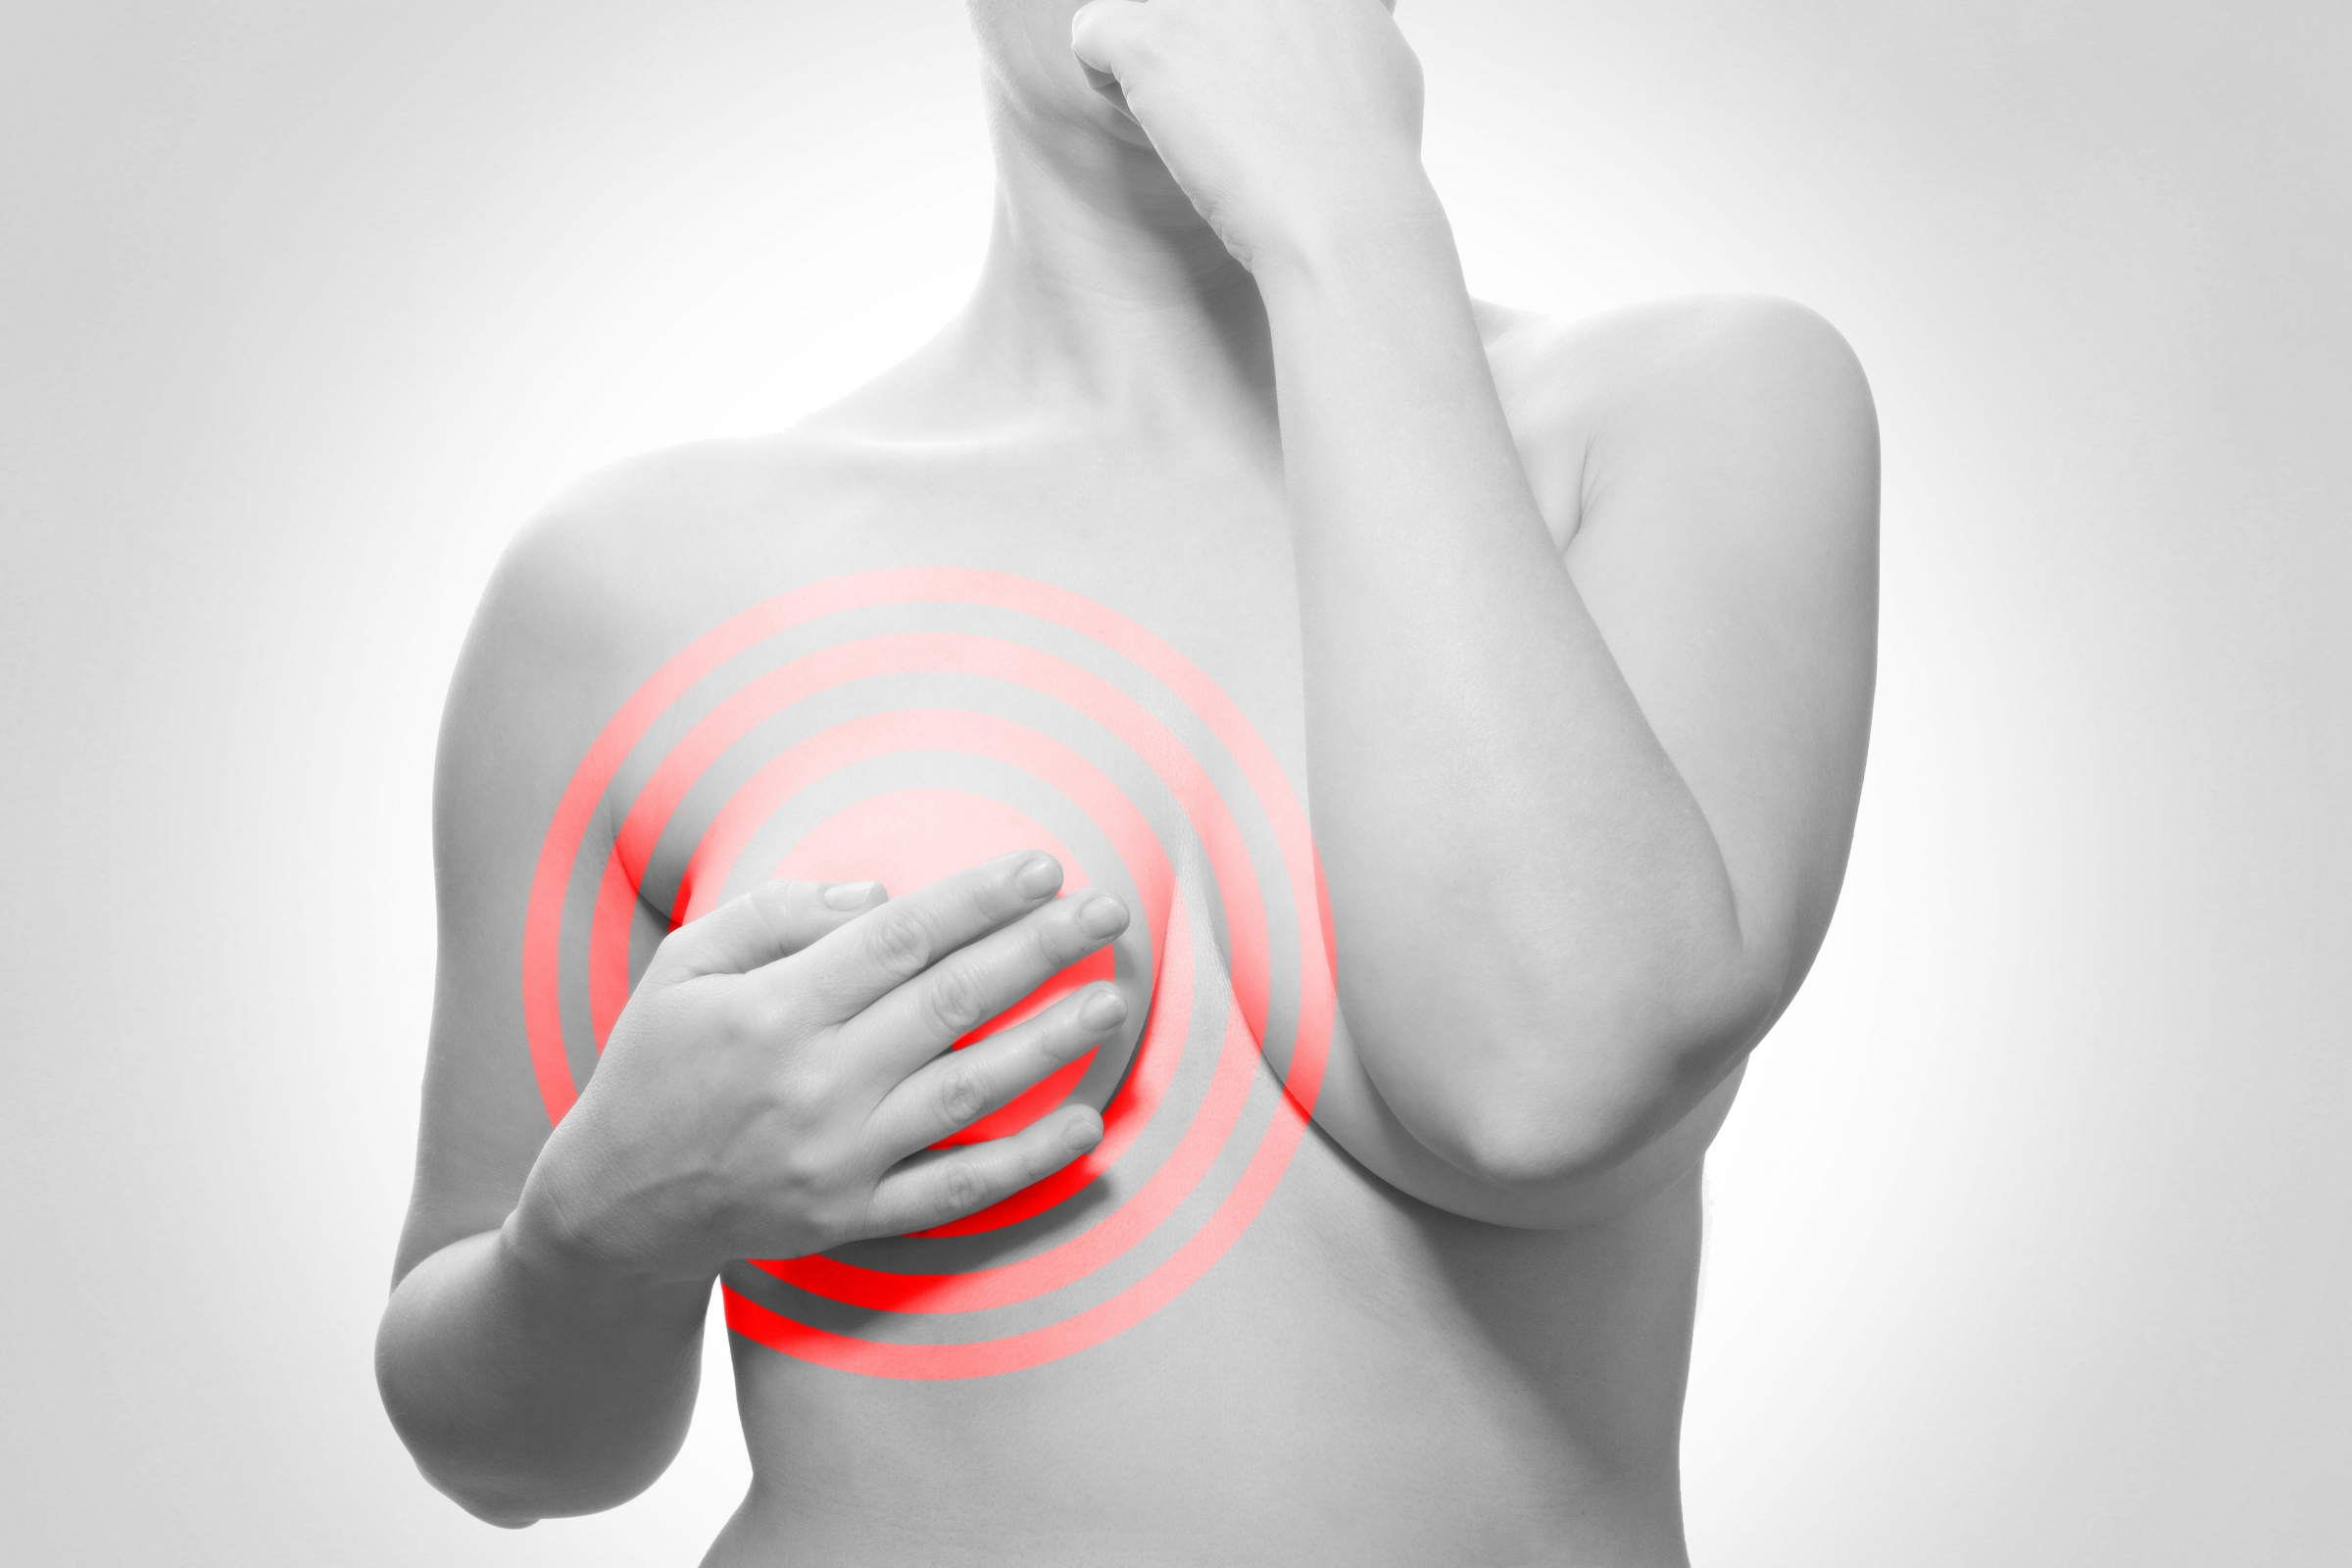 Breast Pain After Breast Implant Placement